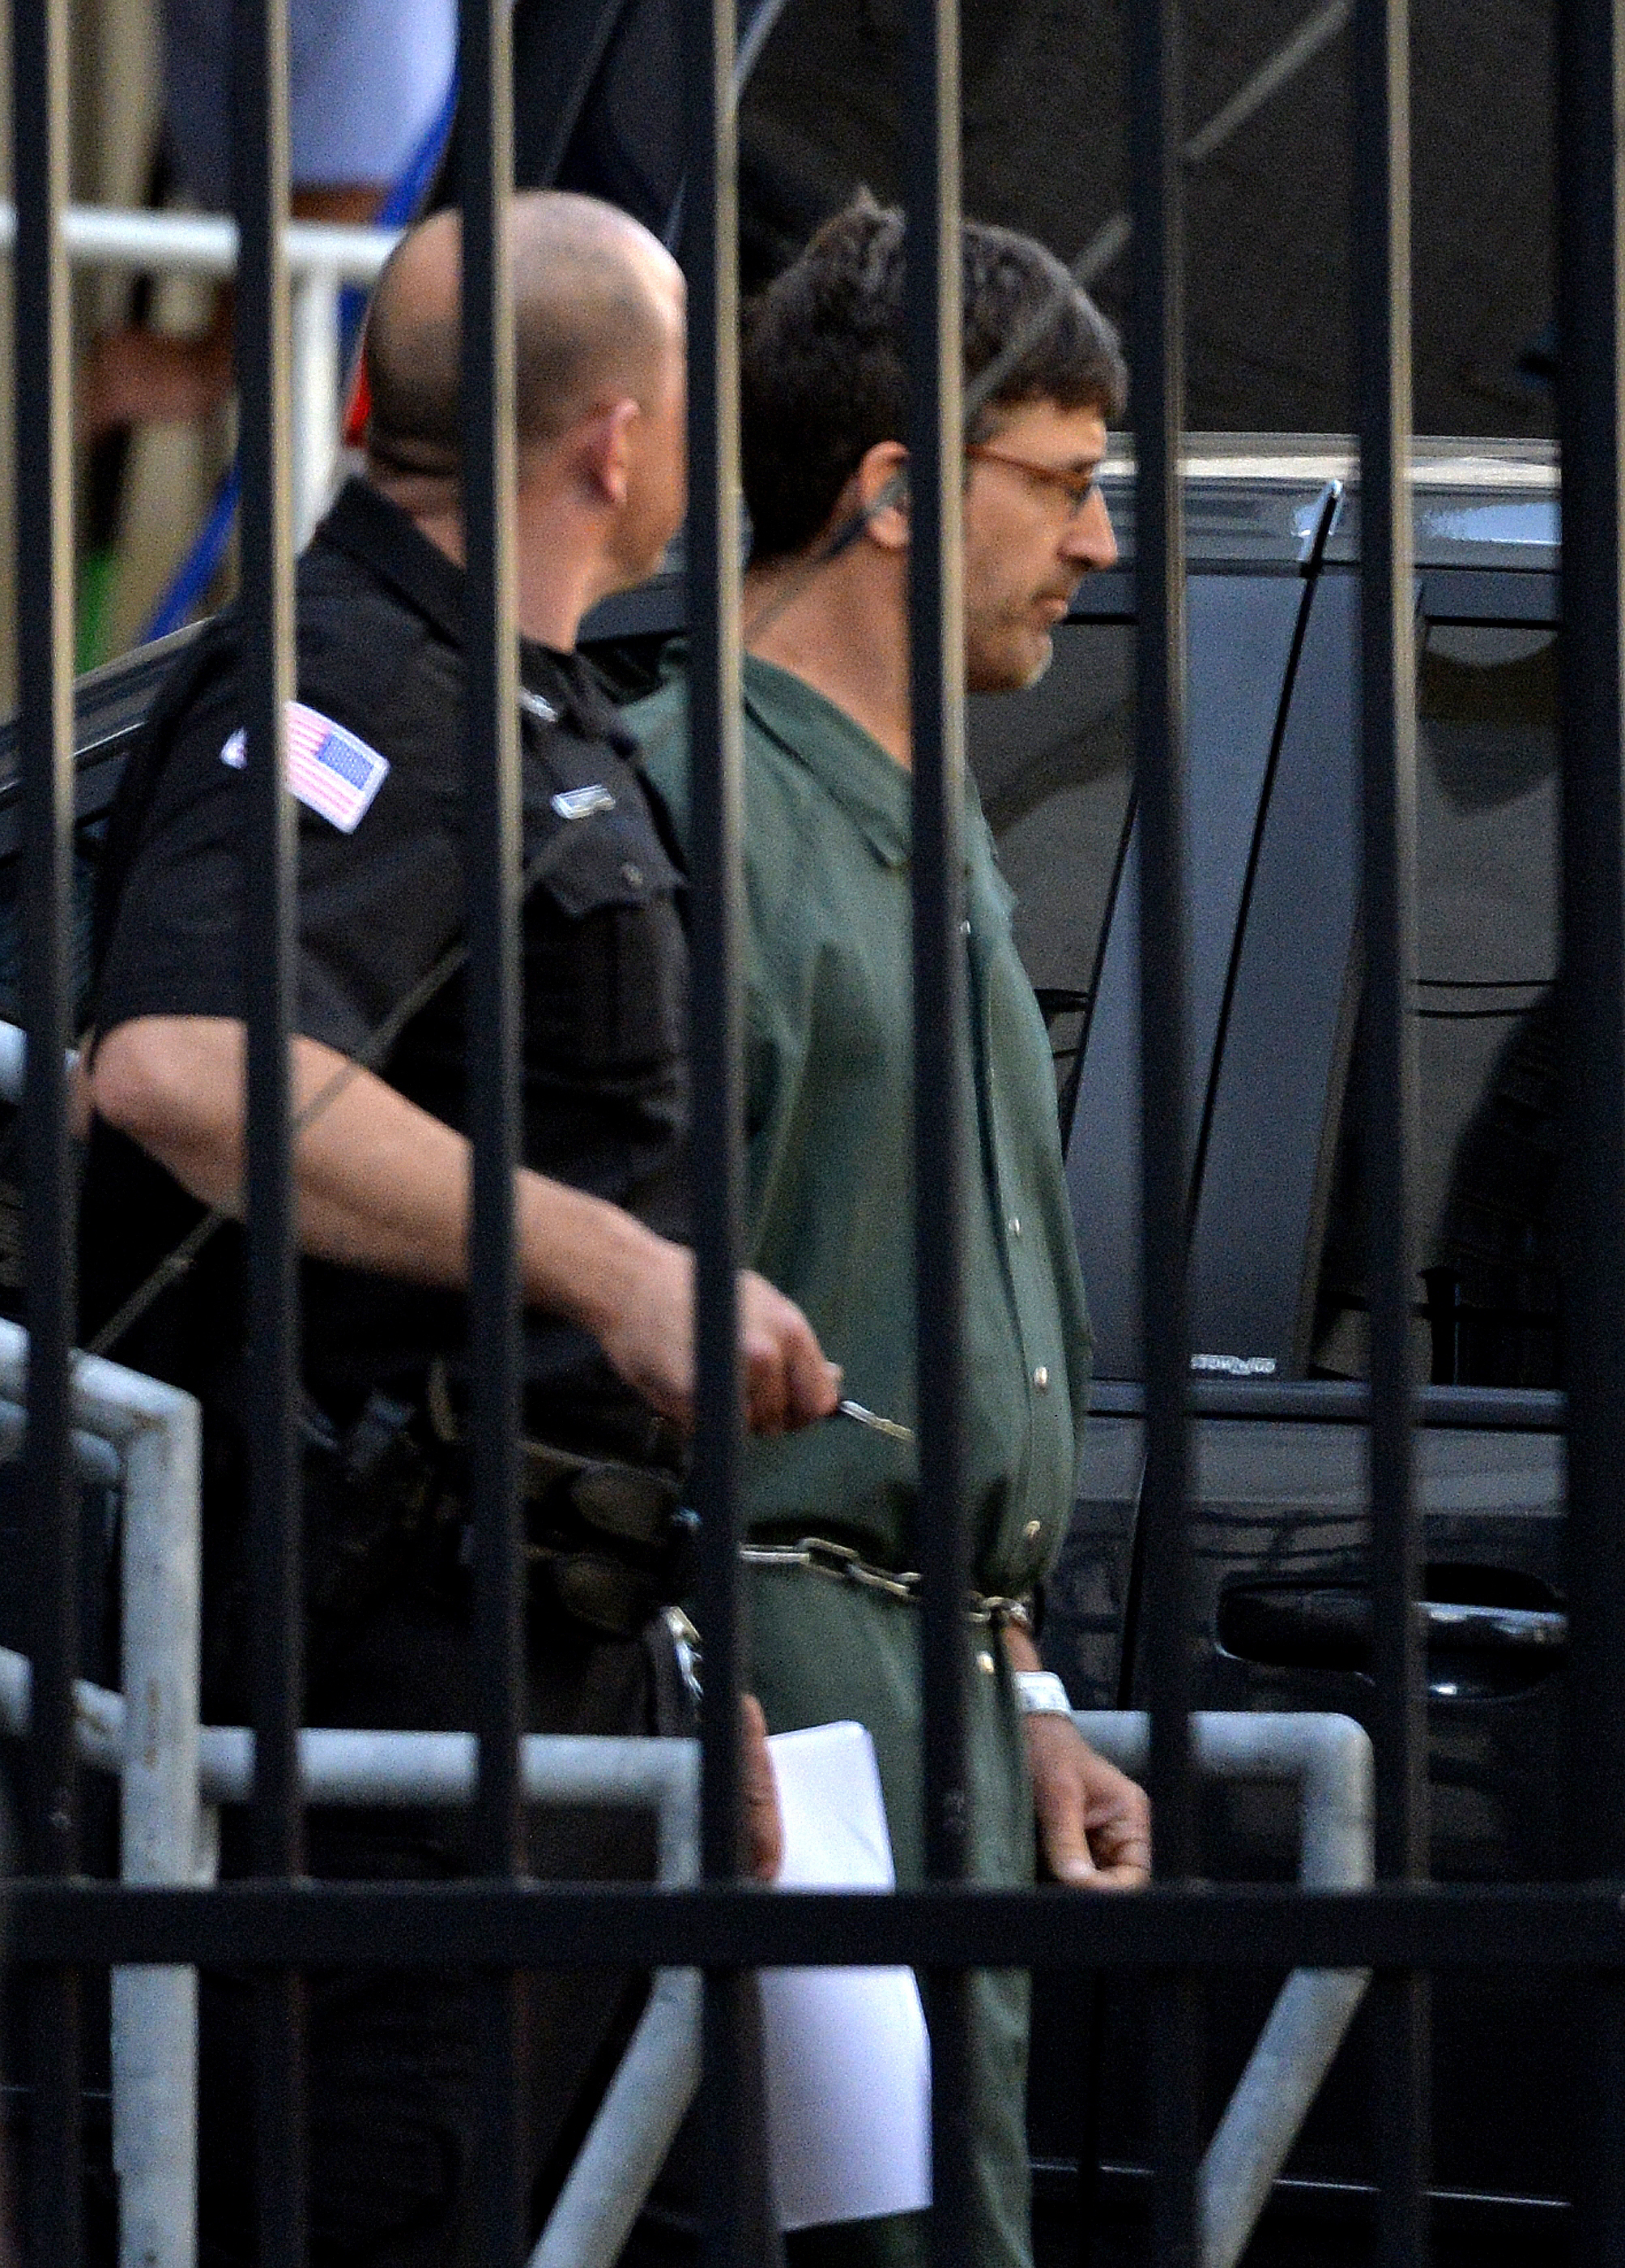 Glendon Scott Crawford, 49, of Galway, N.Y., leaves the federal courthouse in shackles after being arraigned on June 19, 2013, in Albany, N.Y.